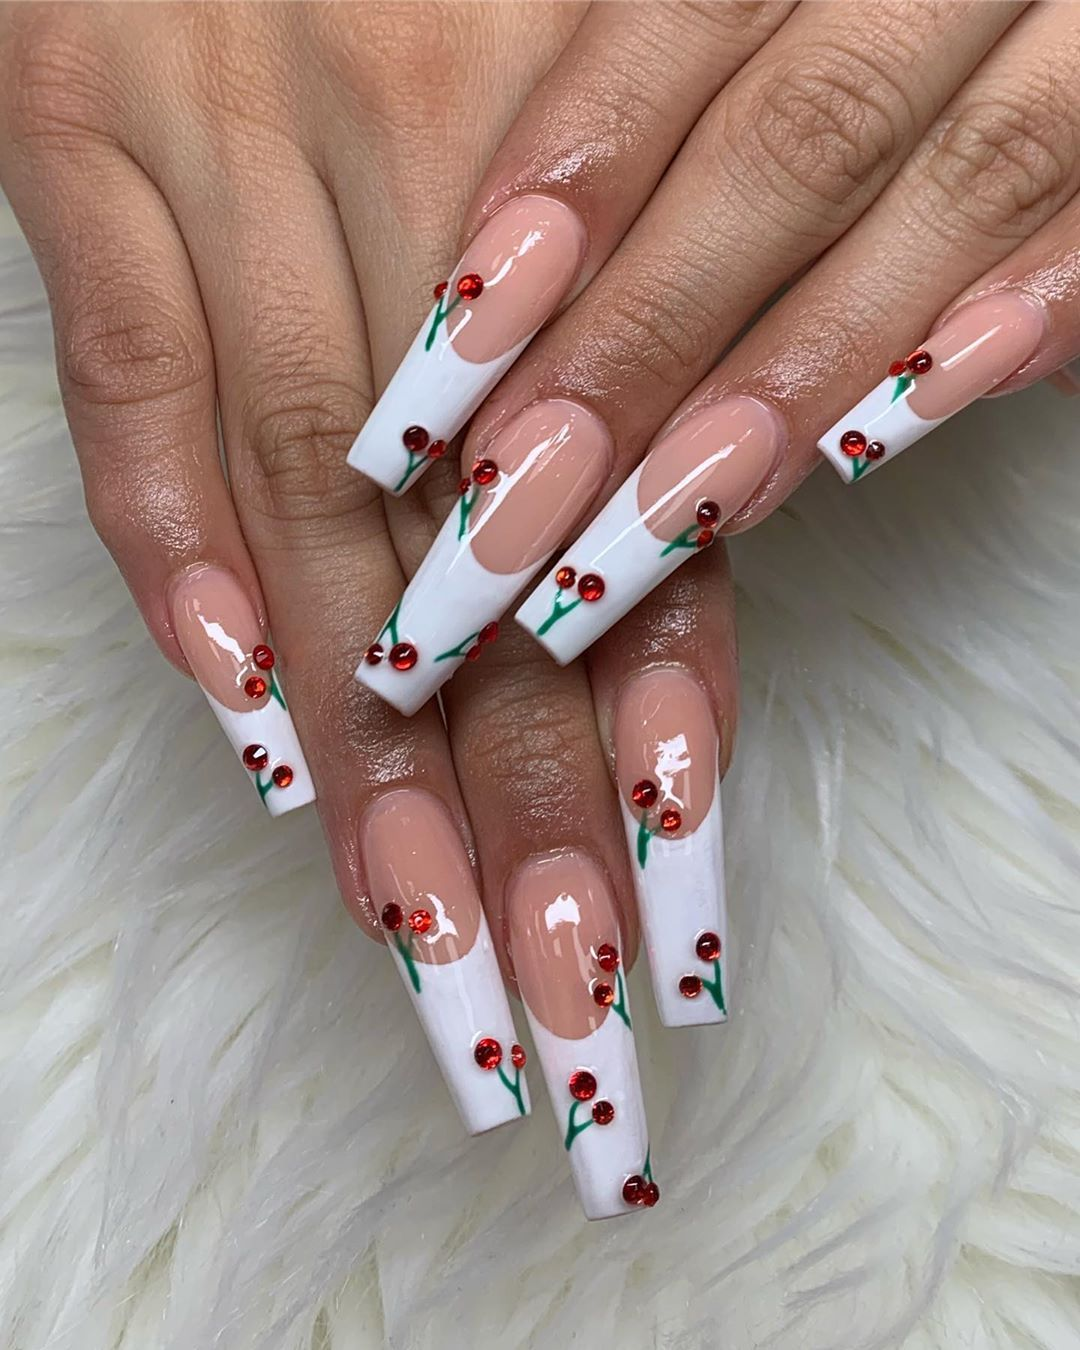 La Style Nails Spa On Instagram Customer S Request Nails Nail Nailsofinstagram Valentinesnails Naildesi In 2020 Cherry Nails Long Acrylic Nails Acrylic Nails